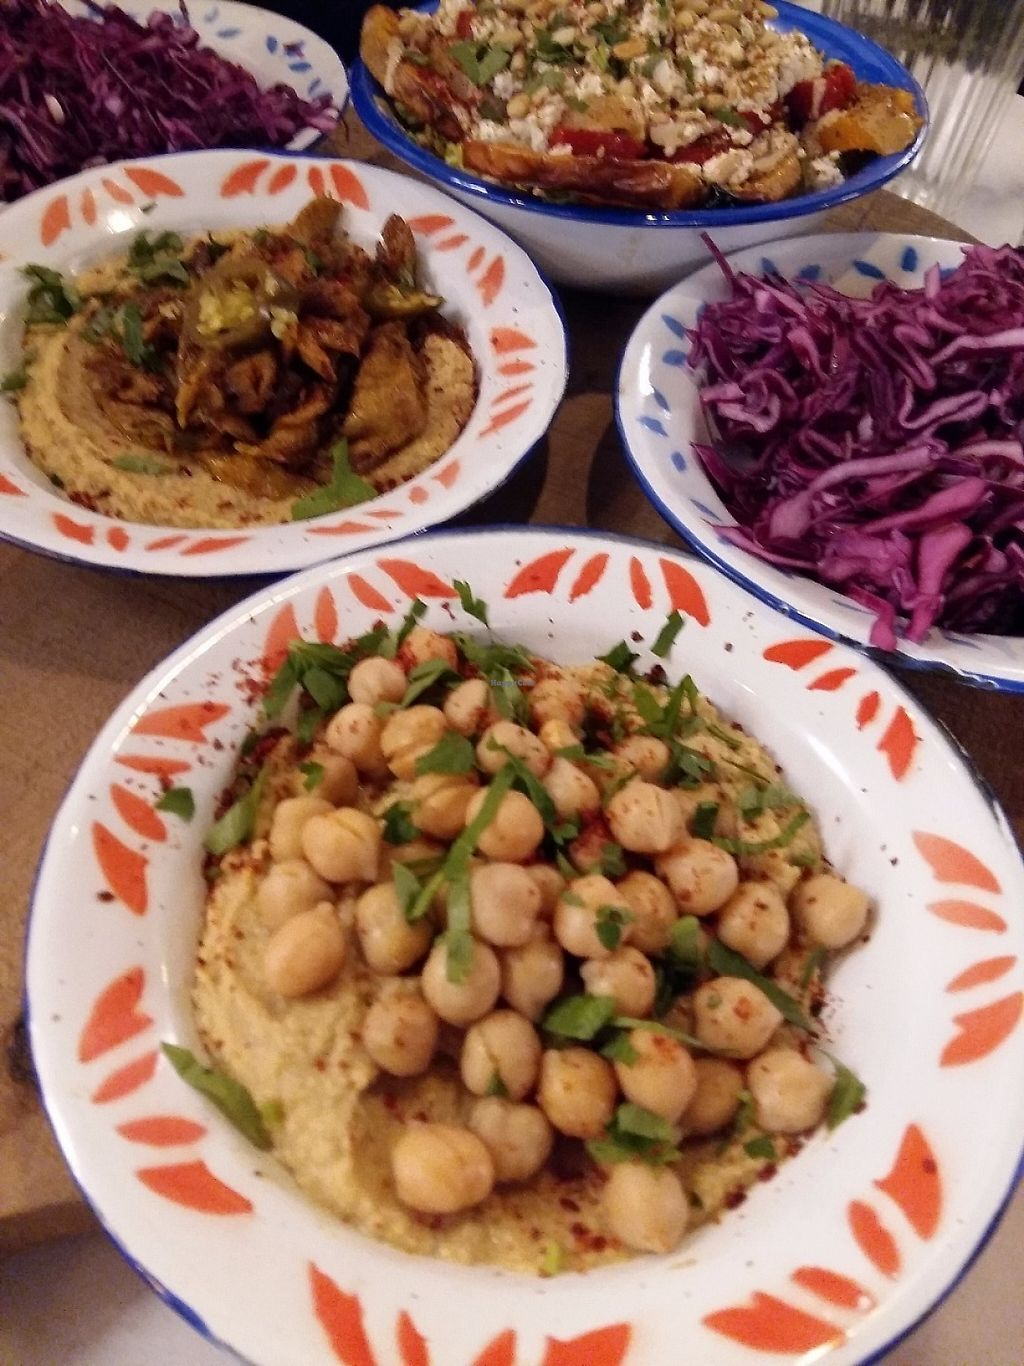 """Photo of Hummus  by <a href=""""/members/profile/Gudrun"""">Gudrun</a> <br/>@ Hummus <br/> May 21, 2017  - <a href='/contact/abuse/image/77109/260914'>Report</a>"""